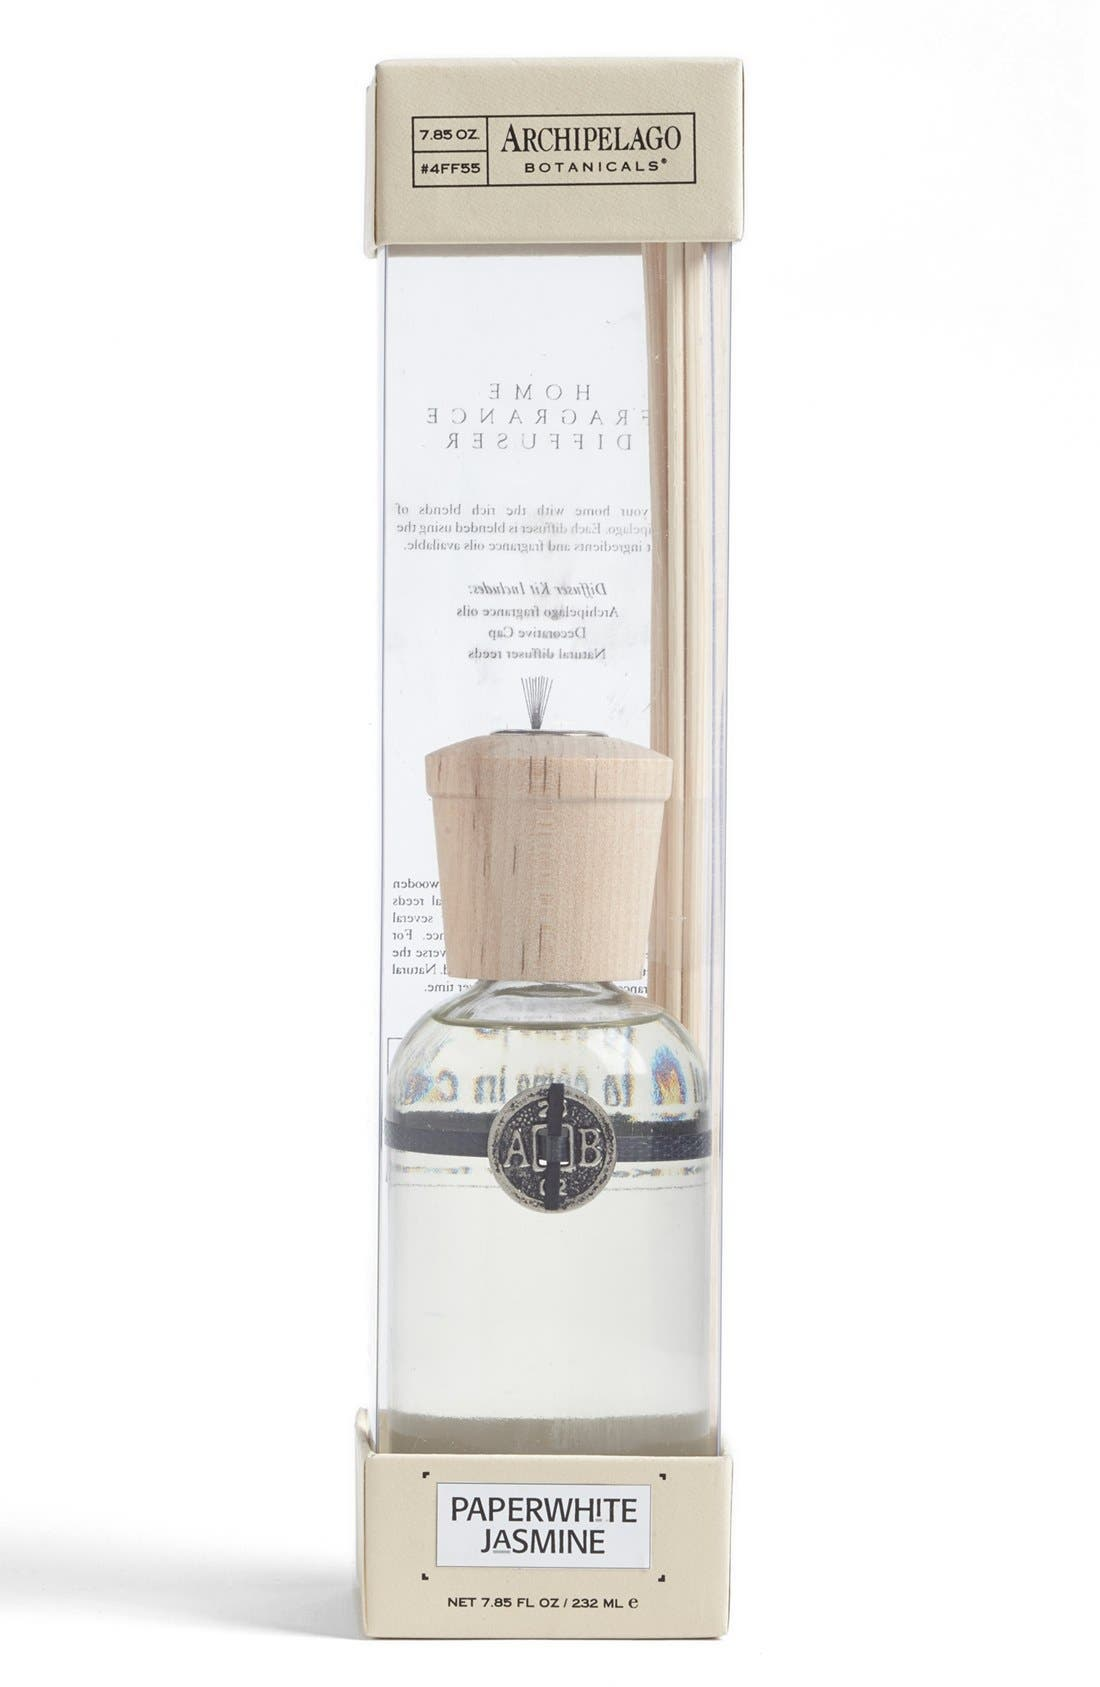 Main Image - Archipelago Botanicals 'Paperwhite Jasmine' Fragrance Diffuser (Special Purchase)